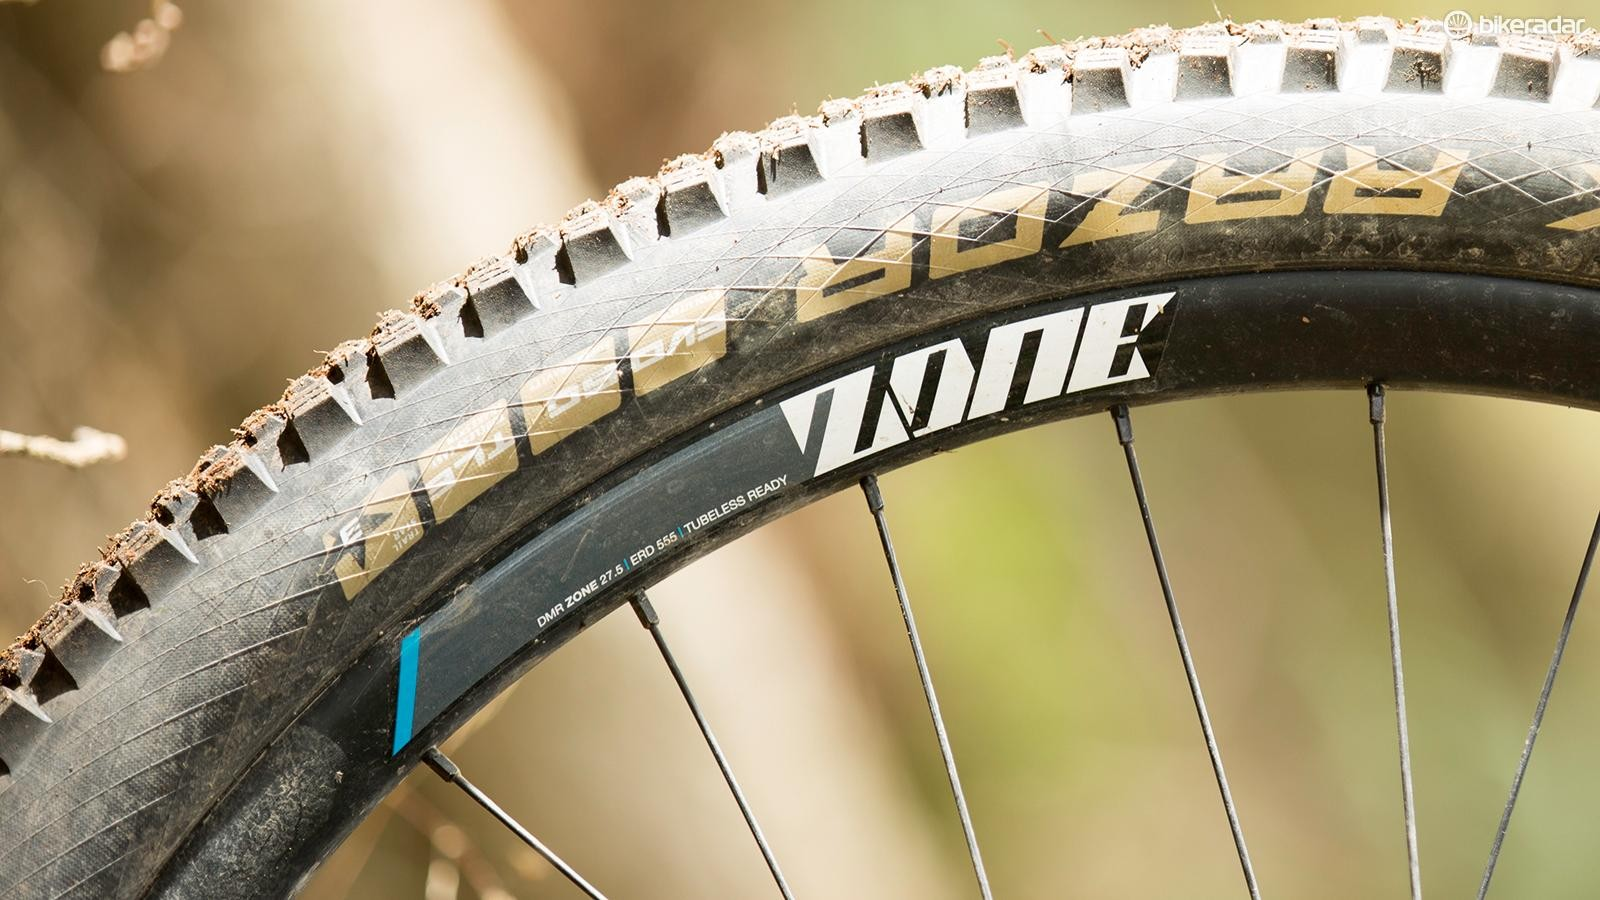 DMR's Zone 650b wheels weathered a season of punishment well